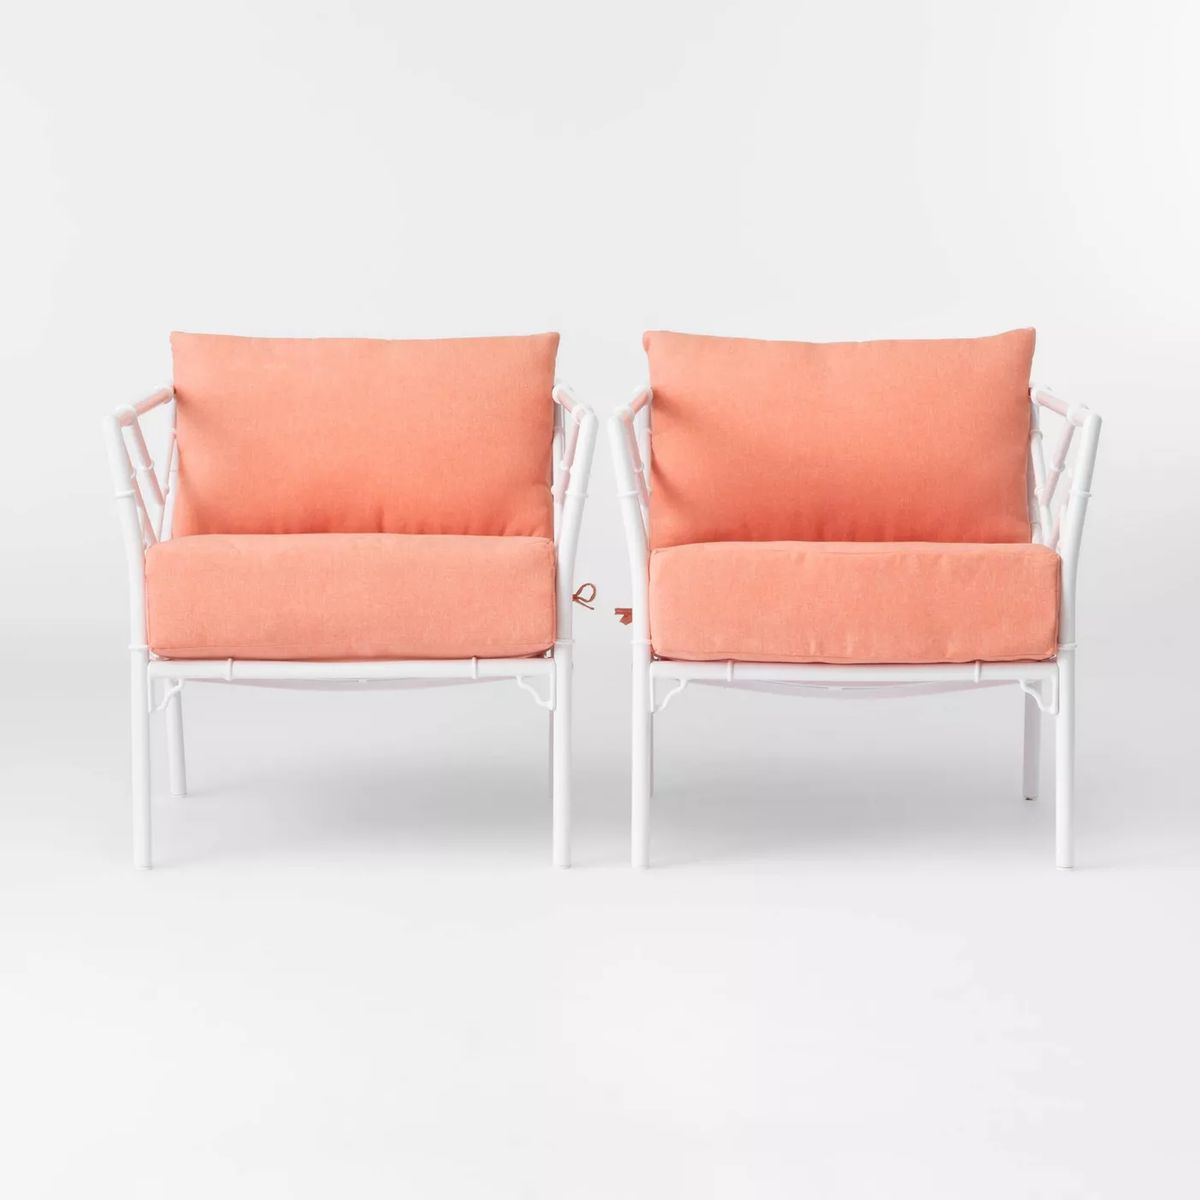 Chair with coral cushions and white frame.